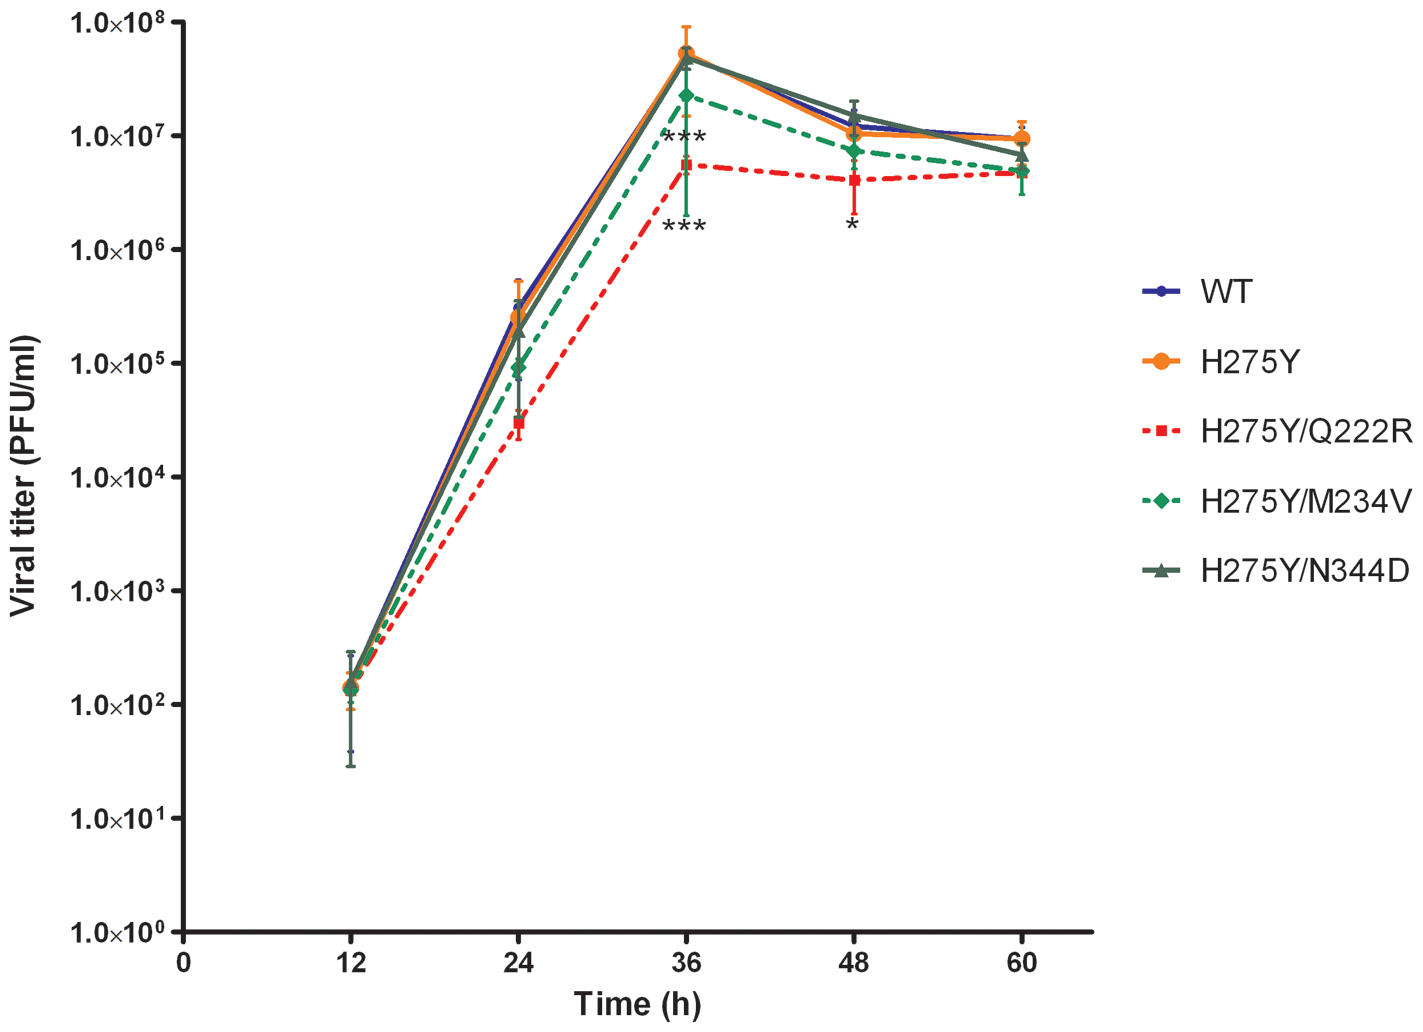 Replication kinetics of recombinant A/Brisbane/59/2007-like viruses <i>in vitro</i>.